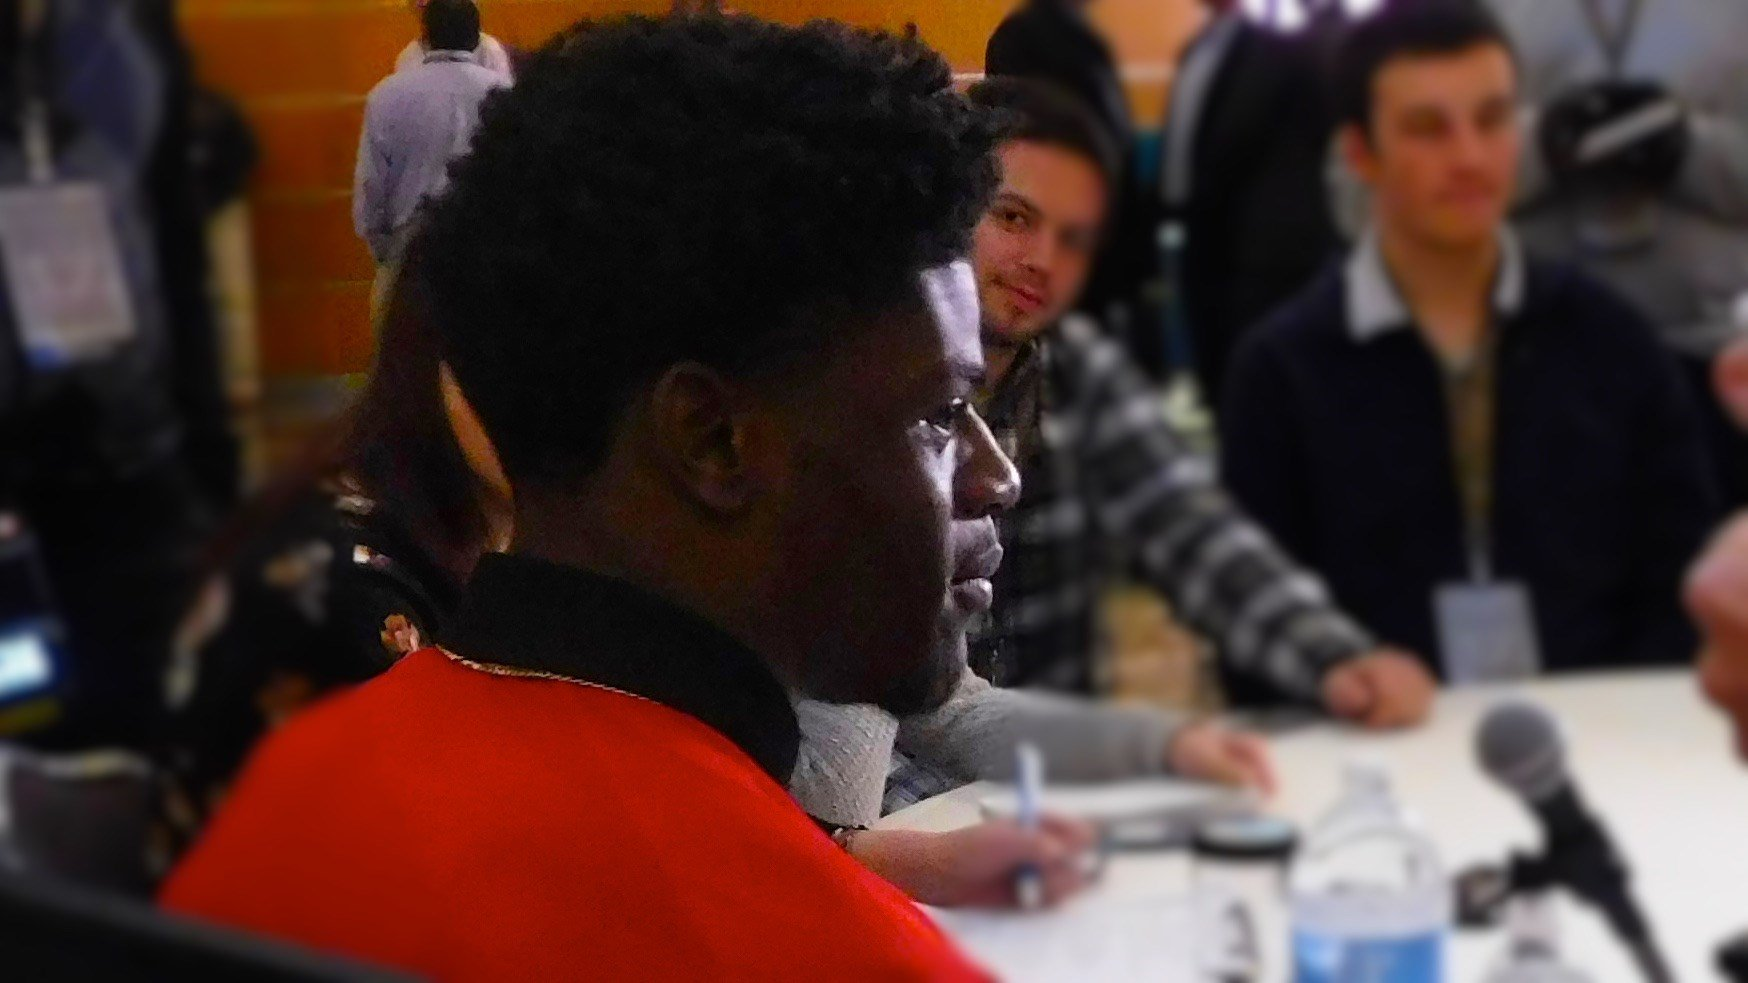 Lamar Jackson speaks with reporters in New York. (WDRB photo by Eric Crawford)